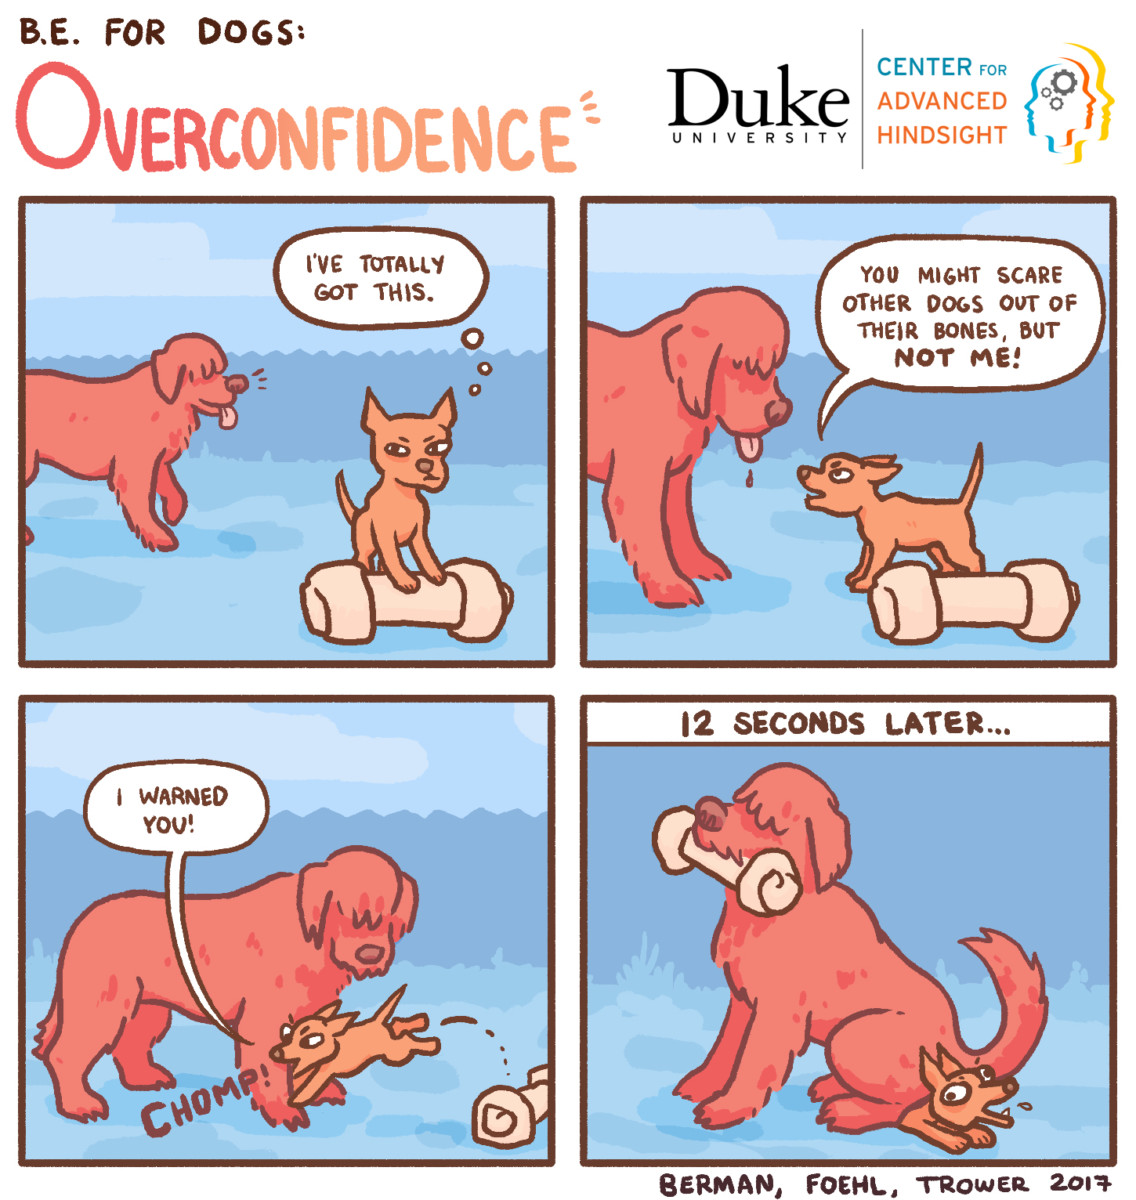 Overconfidence | Behavioral economics | Center for advanced hindsight